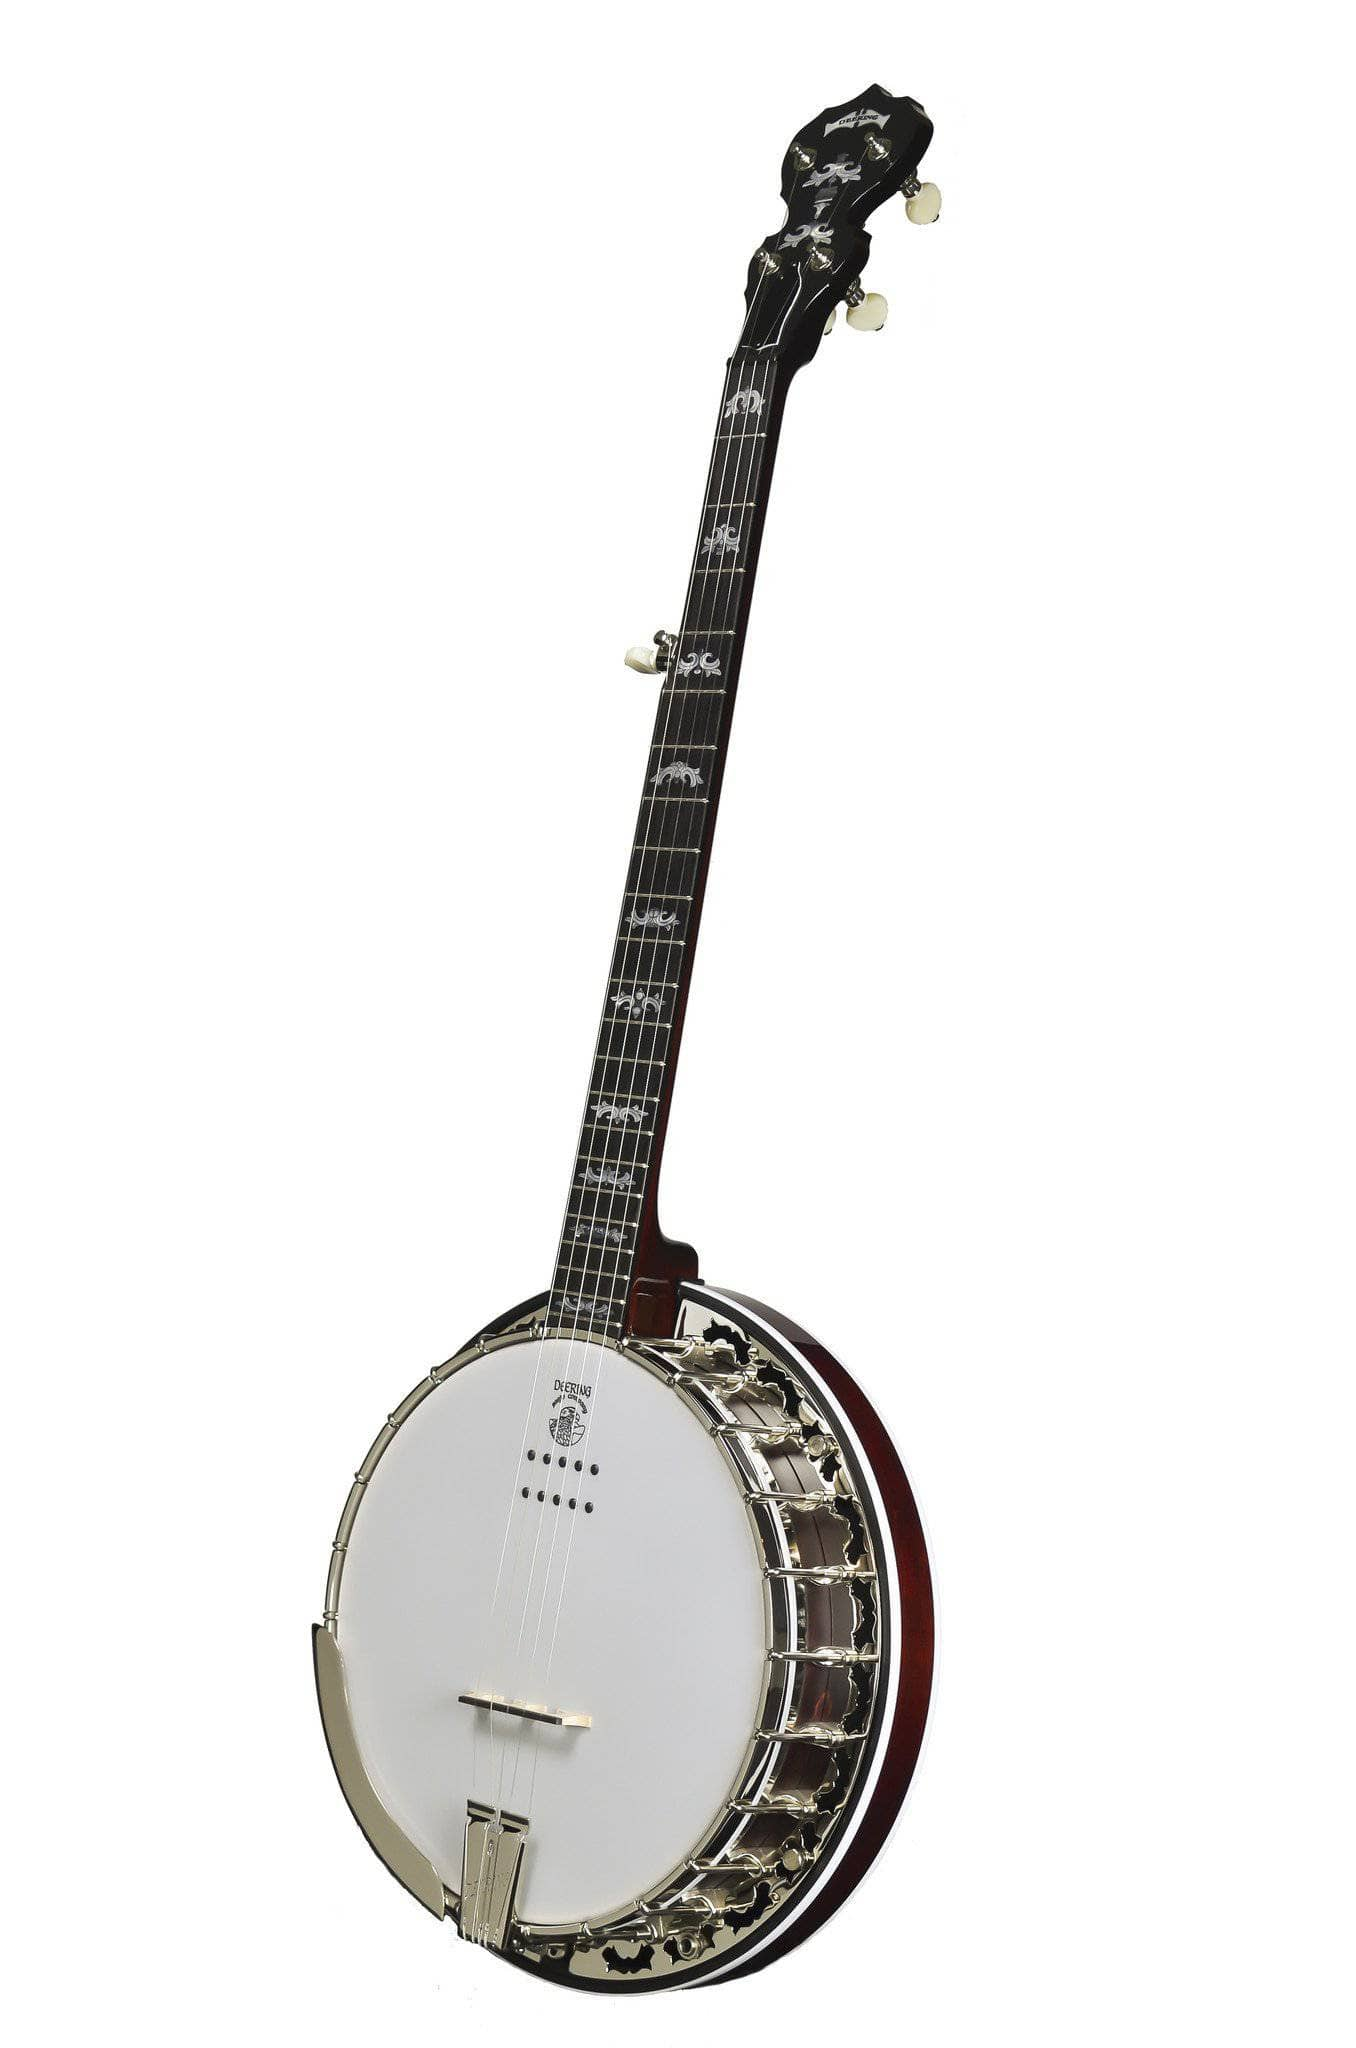 Deering Eagle II Acoustic/Electric 5-String Banjo - Banjo Studio  - 1